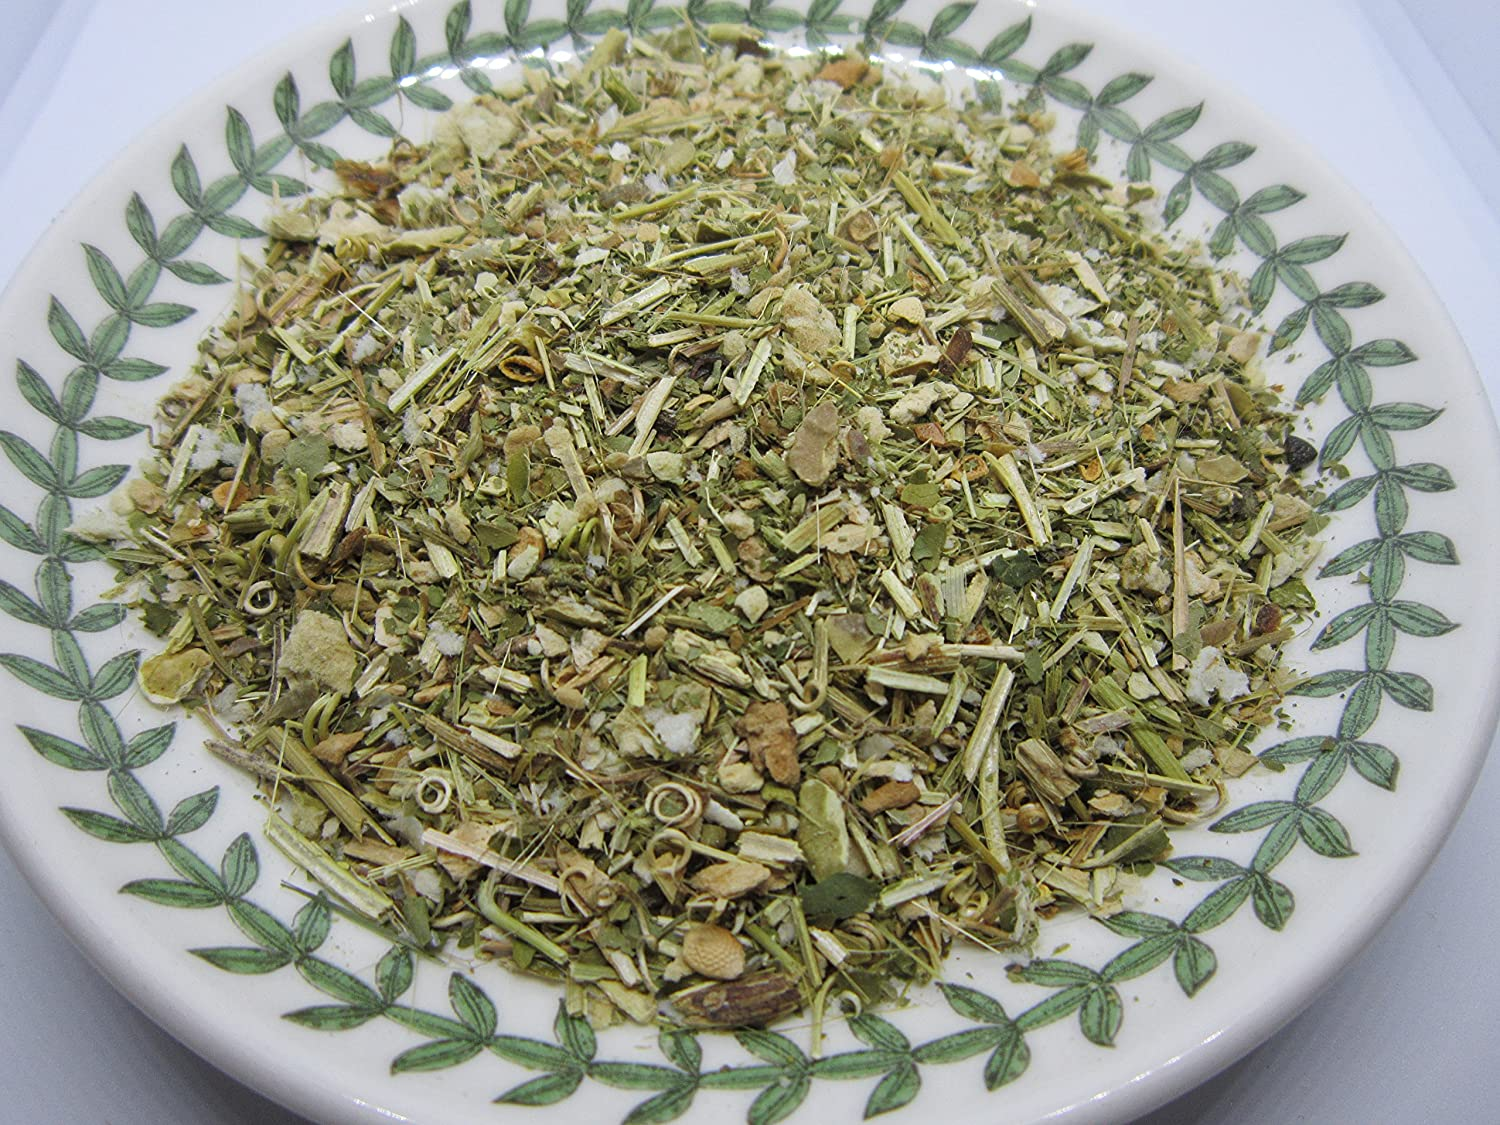 Passion Flower - Passiflora incarnata Loose Cut/Sifted by Nature Tea (4 oz